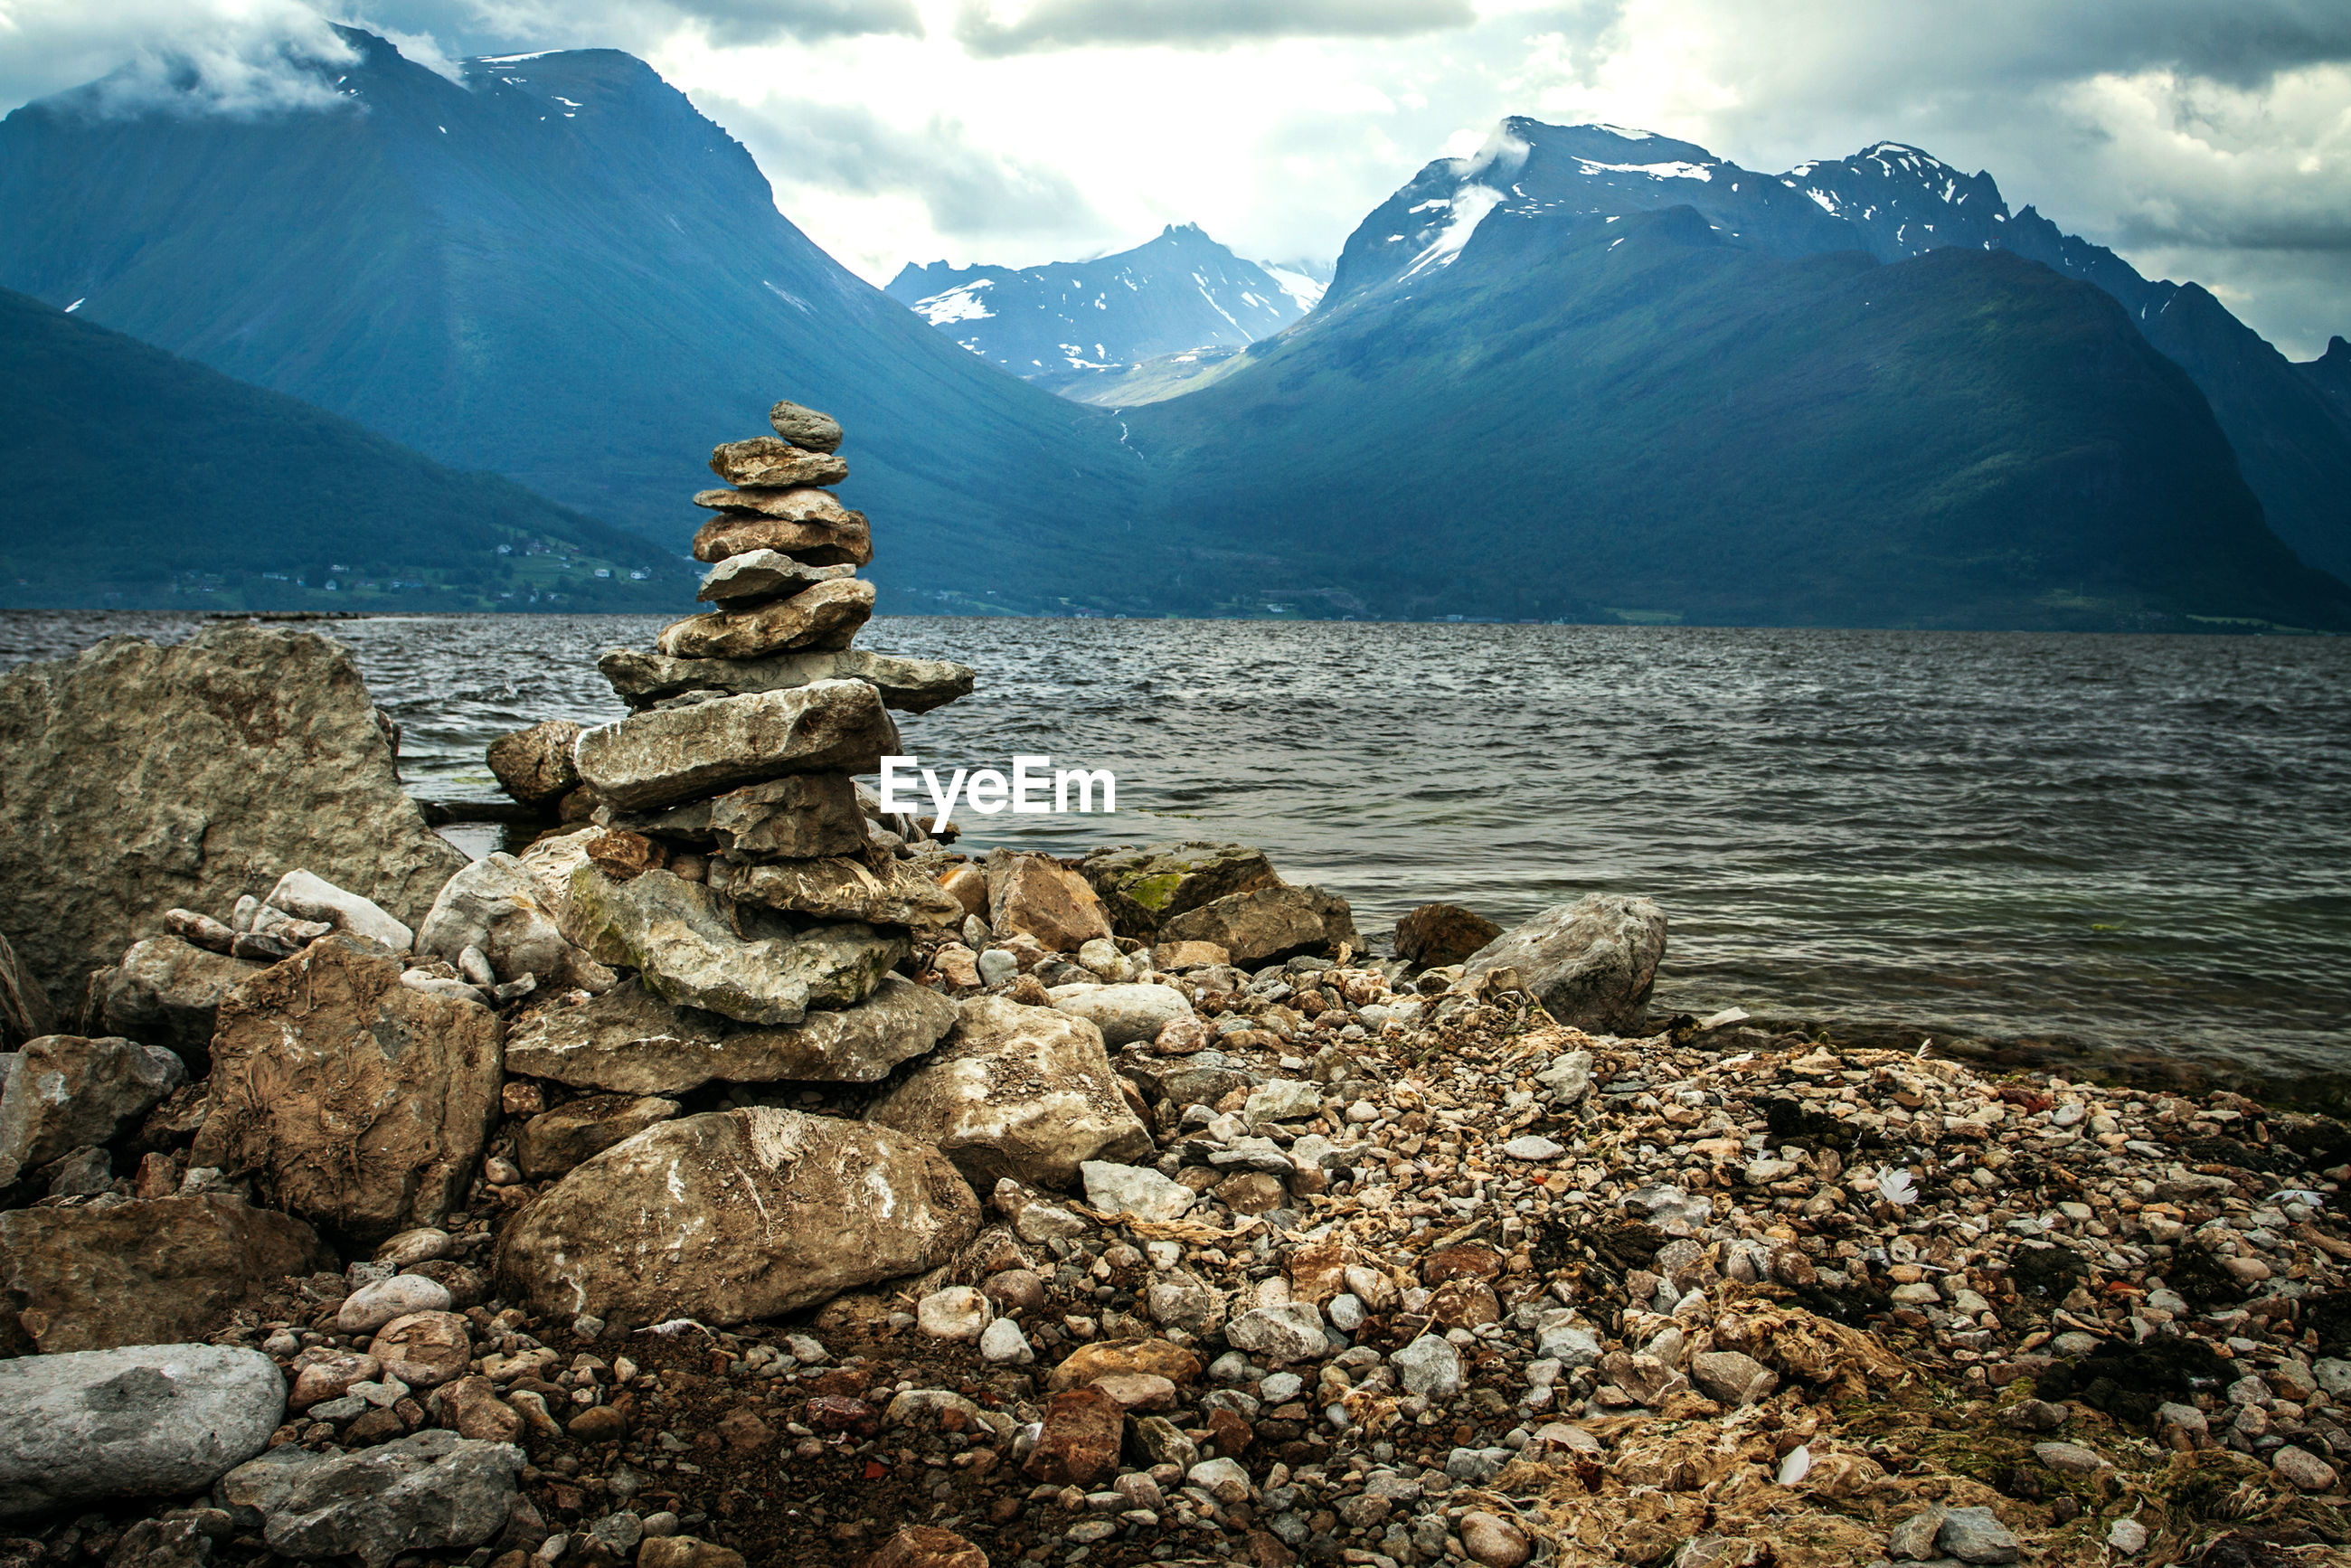 STACK OF ROCKS ON SHORE AGAINST MOUNTAIN